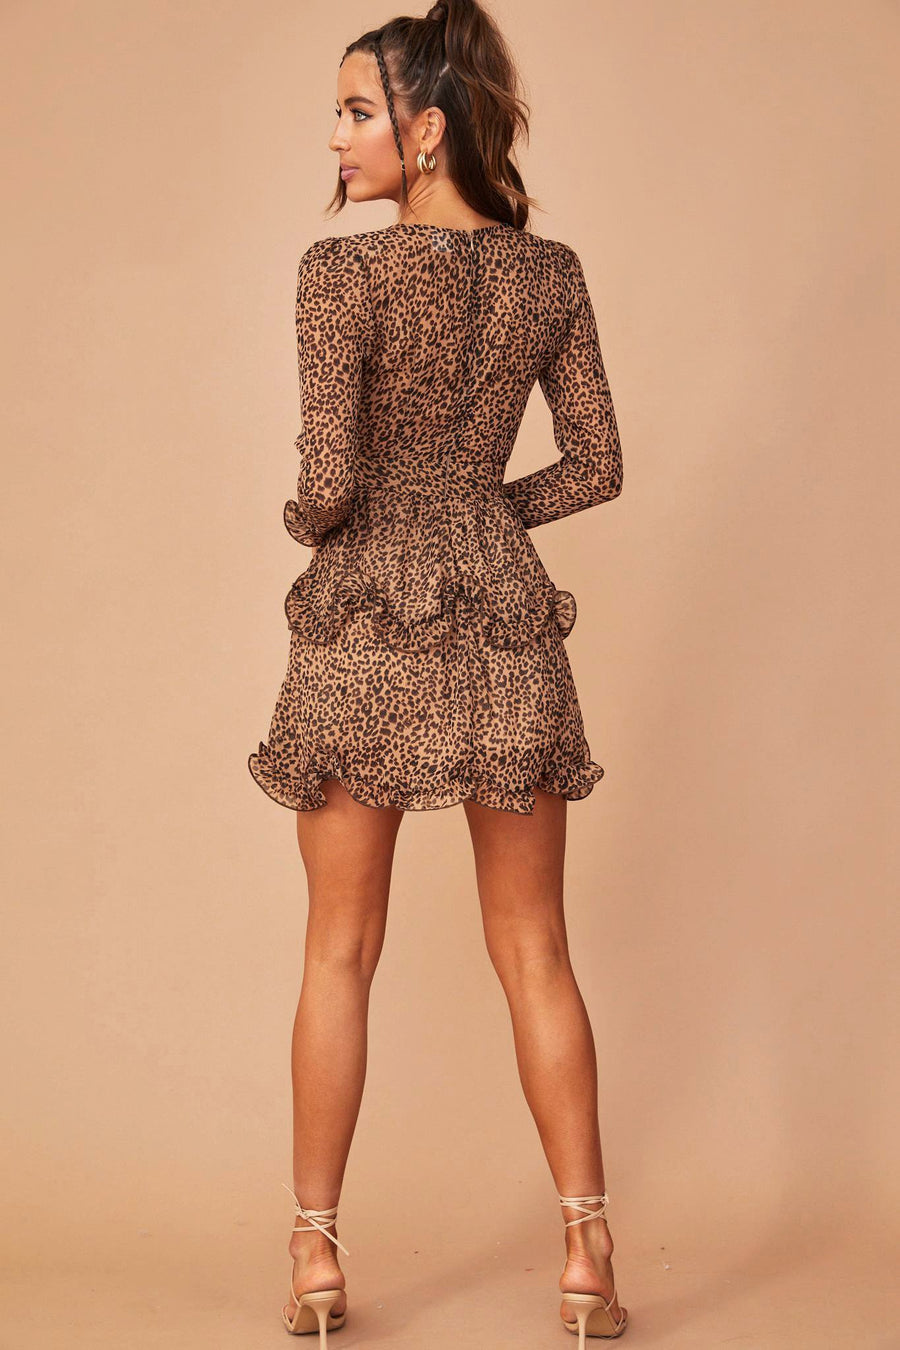 Beg For It Dress // Brown